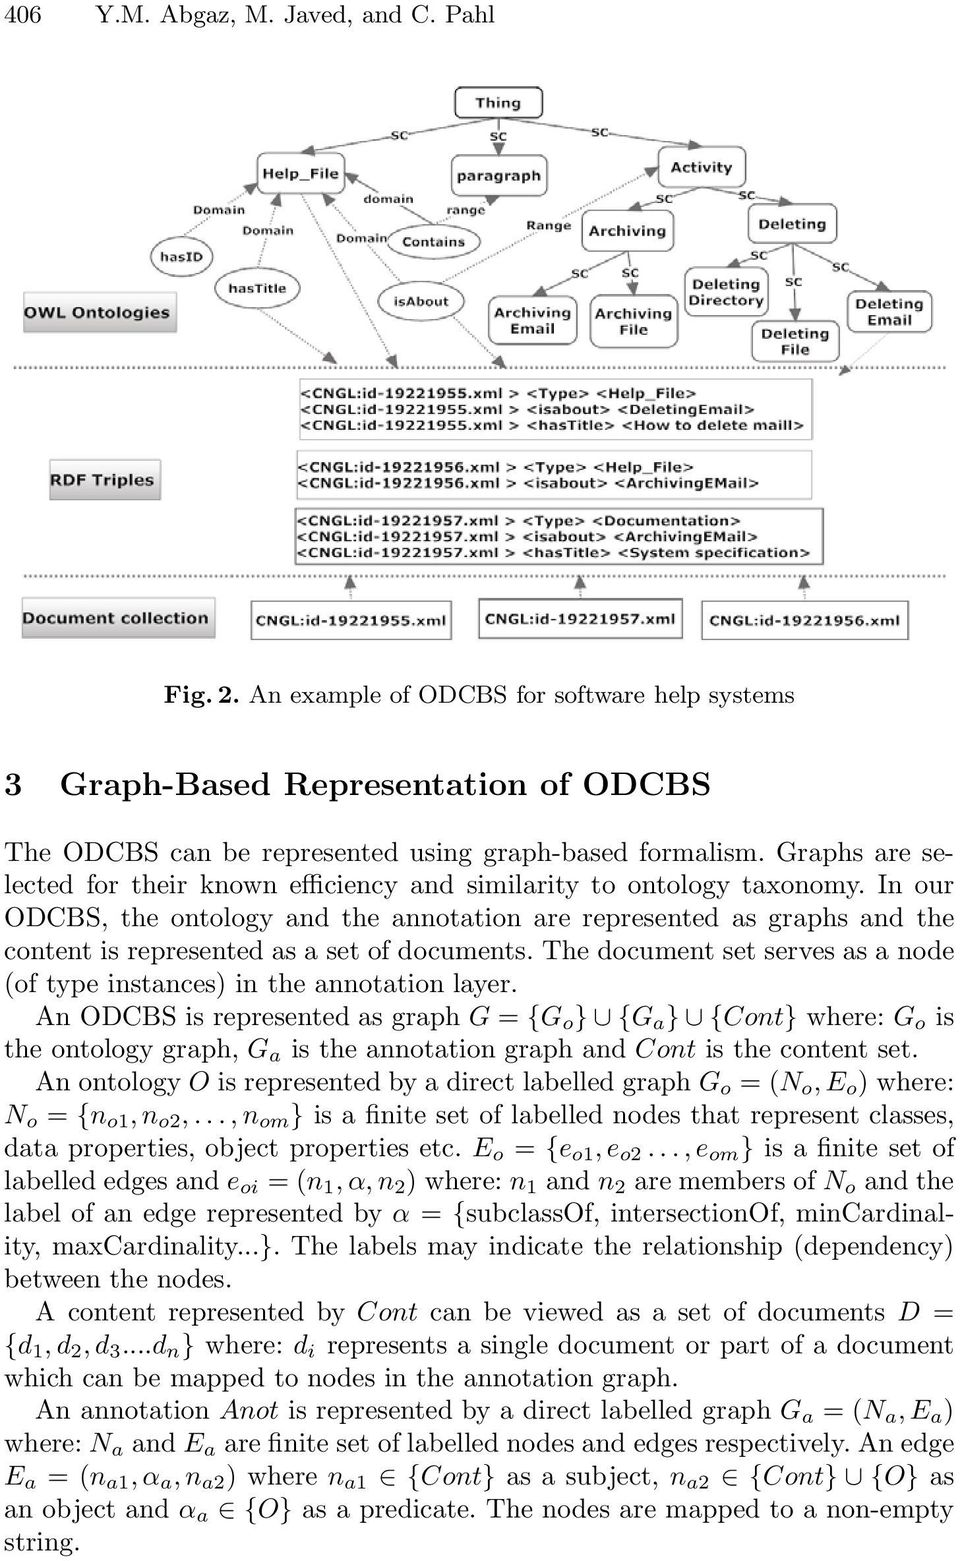 In our ODCBS, the ontology and the annotation are represented as graphs and the content is represented as a set of documents.